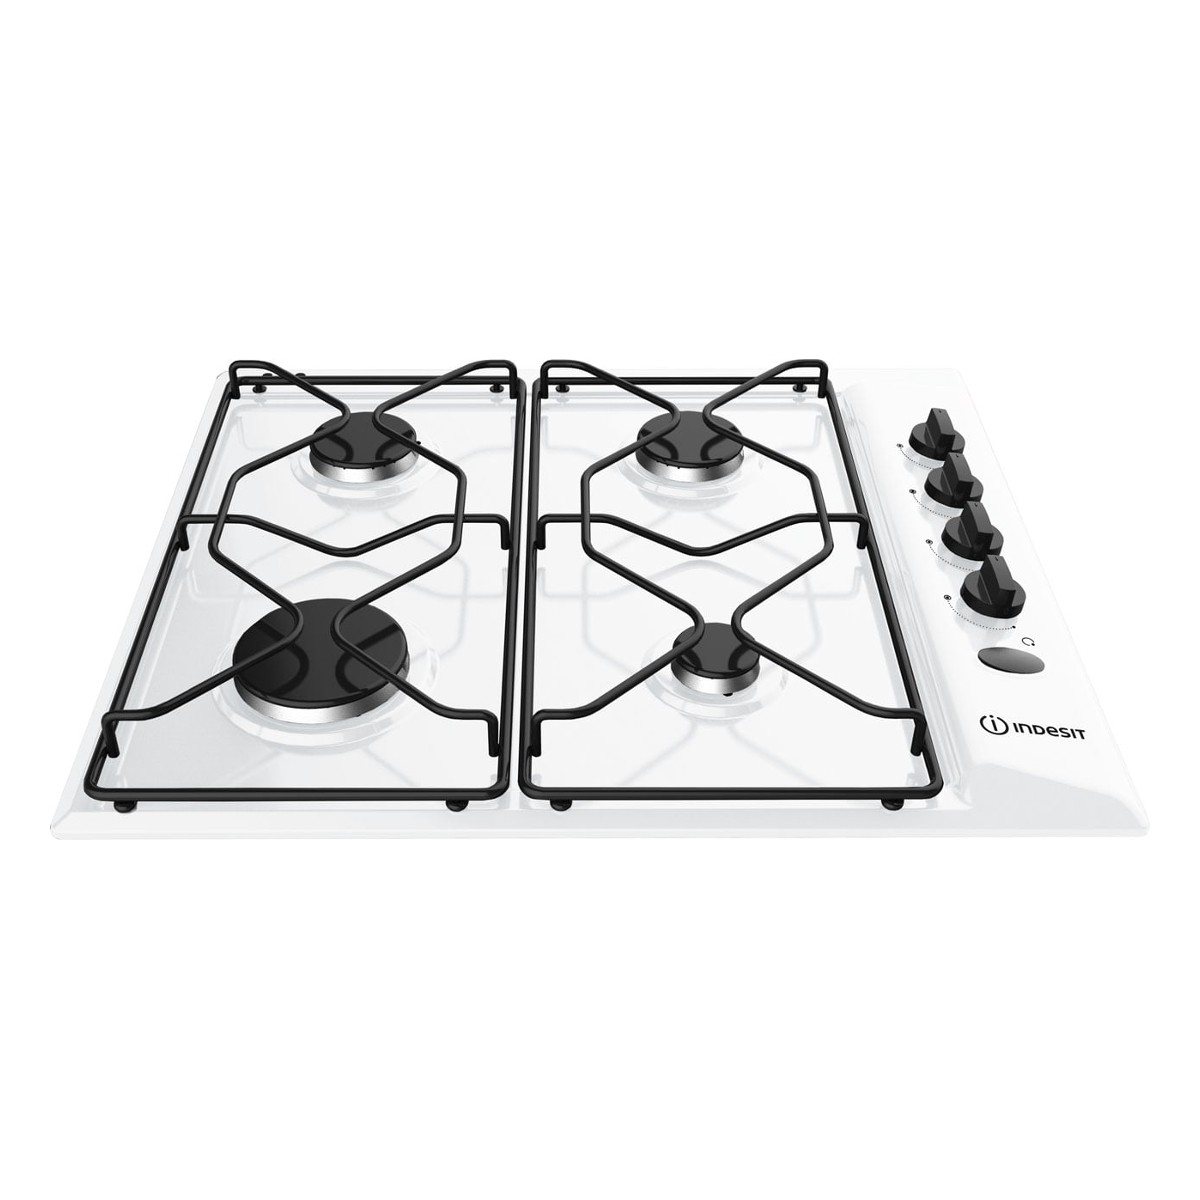 Indesit PAA642-1WH 58cm Built in Gas Hob with 4 Burners in White ...